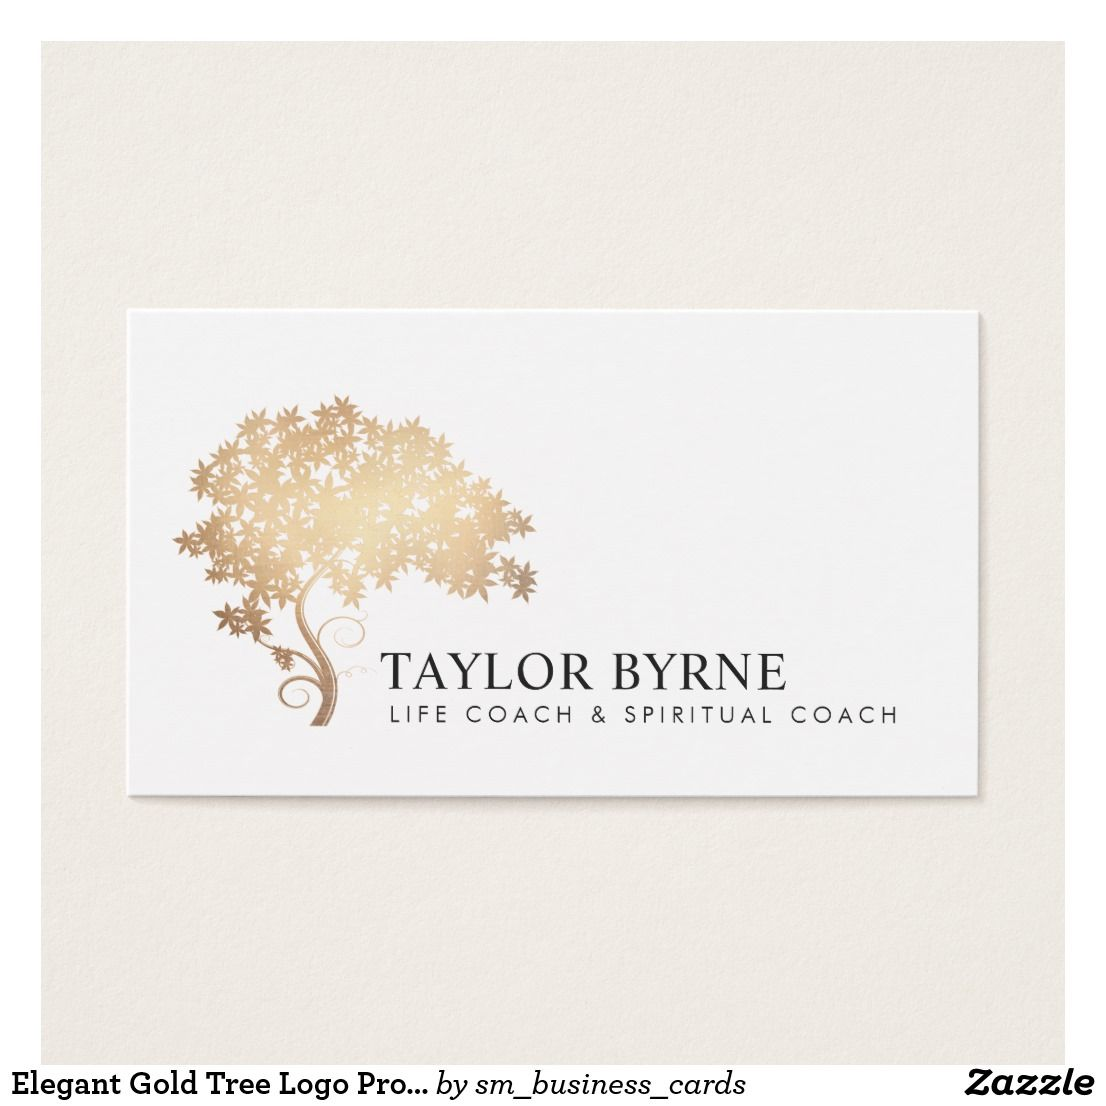 Elegant Gold Tree Logo Professional Business Card | Tree logos and ...